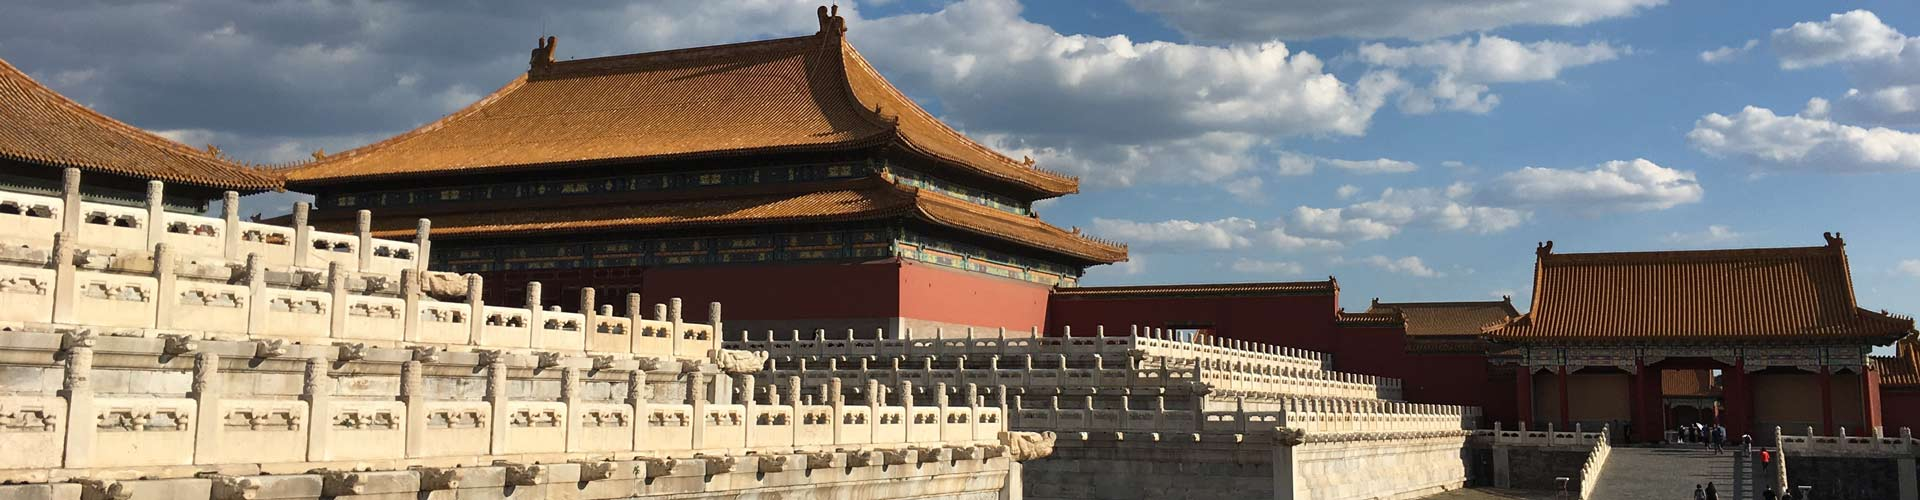 3 Day (2 Night) Beijing Private Tour Package